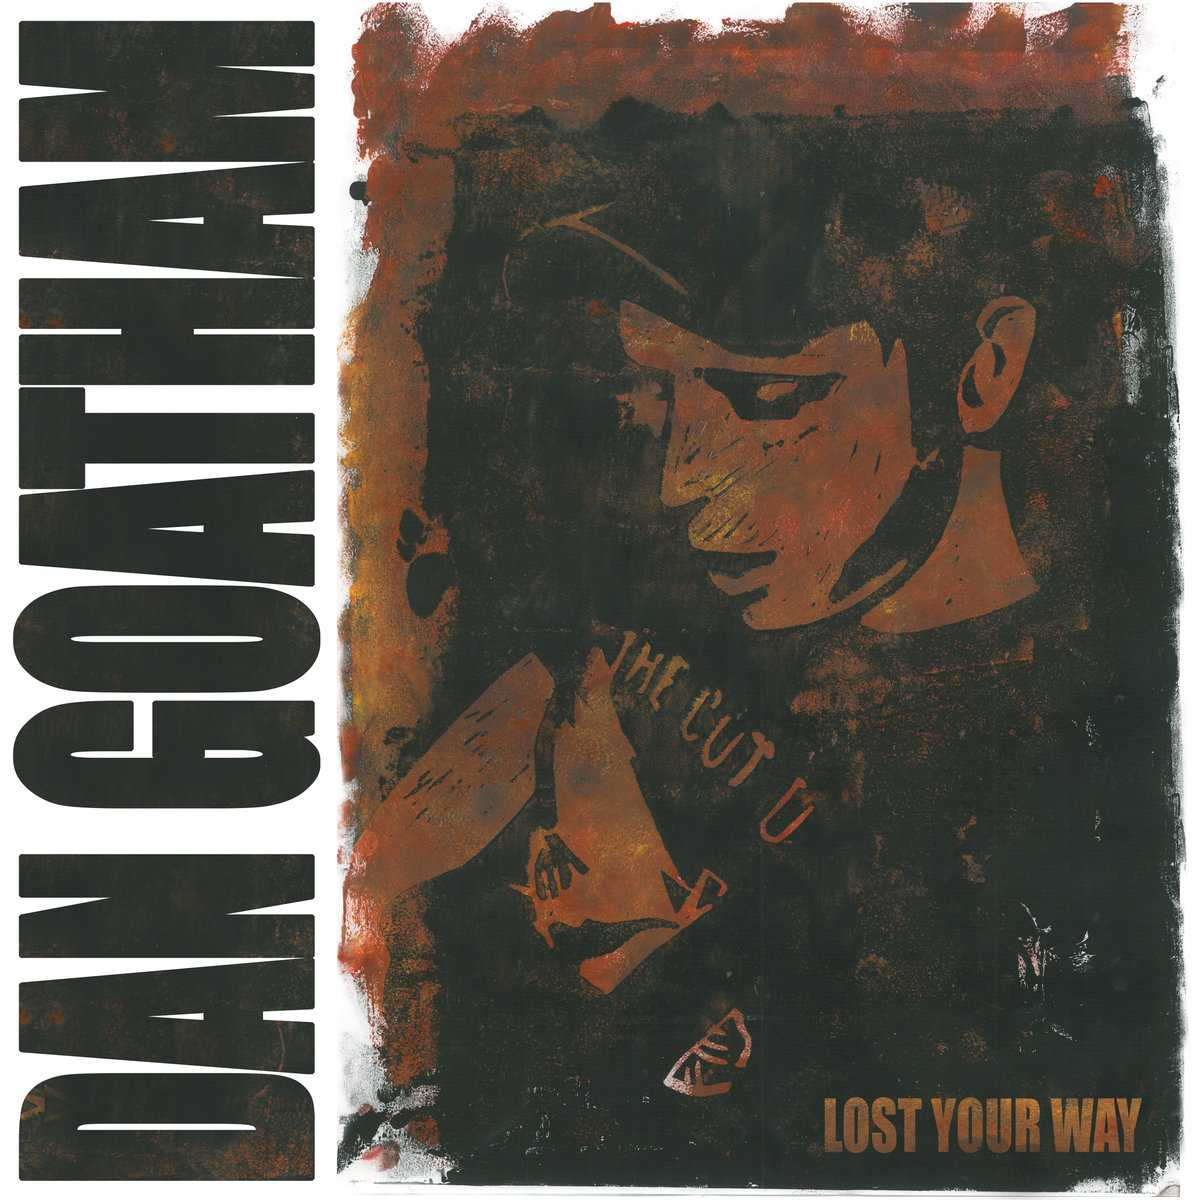 Lost Your Way - Dan Goatham